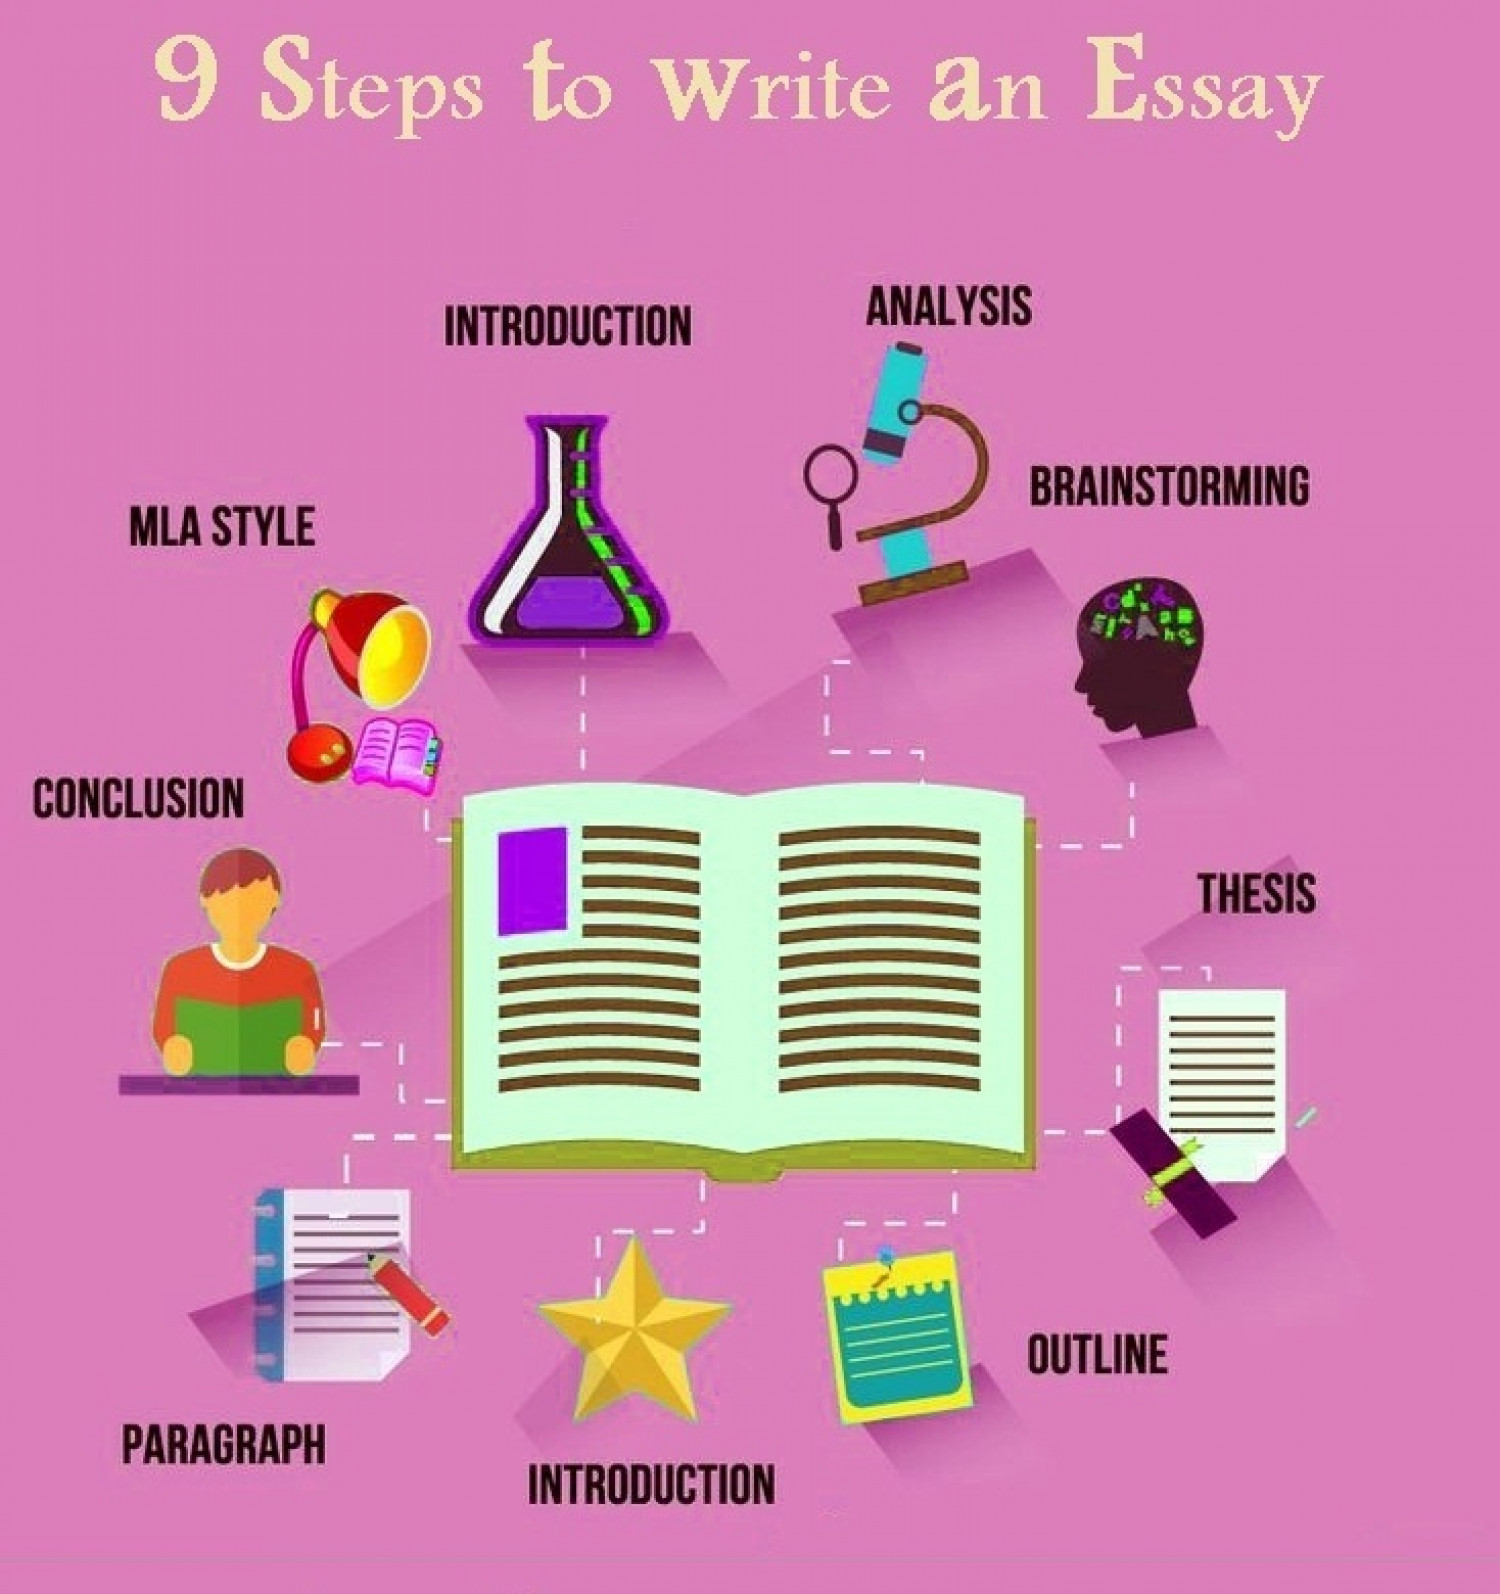 steps writing 3 paragraph essay The three-paragraph essay is an essay teachers create to help students learn format and structure it is not an essay you will see in professional writing, nor is it an essay that students will usually write once they become proficient writers.